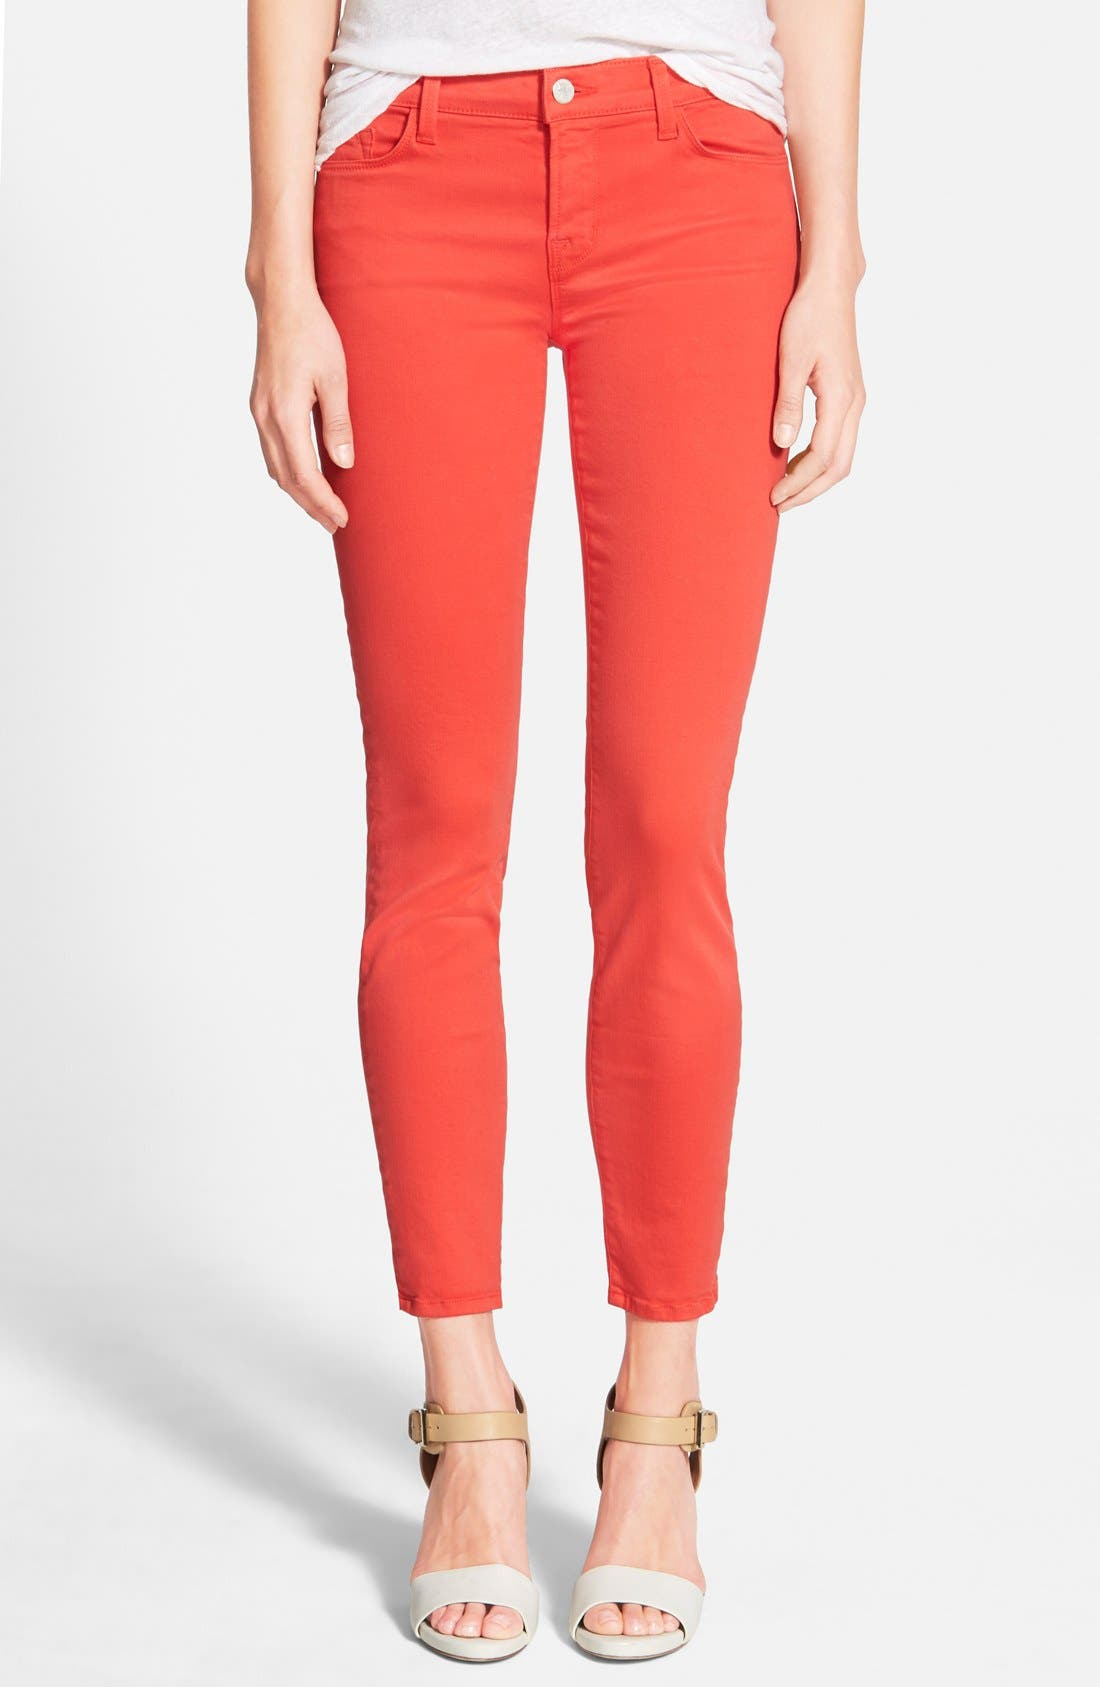 Alternate Image 1 Selected - J Brand Low Rise Ankle Skinny Jeans